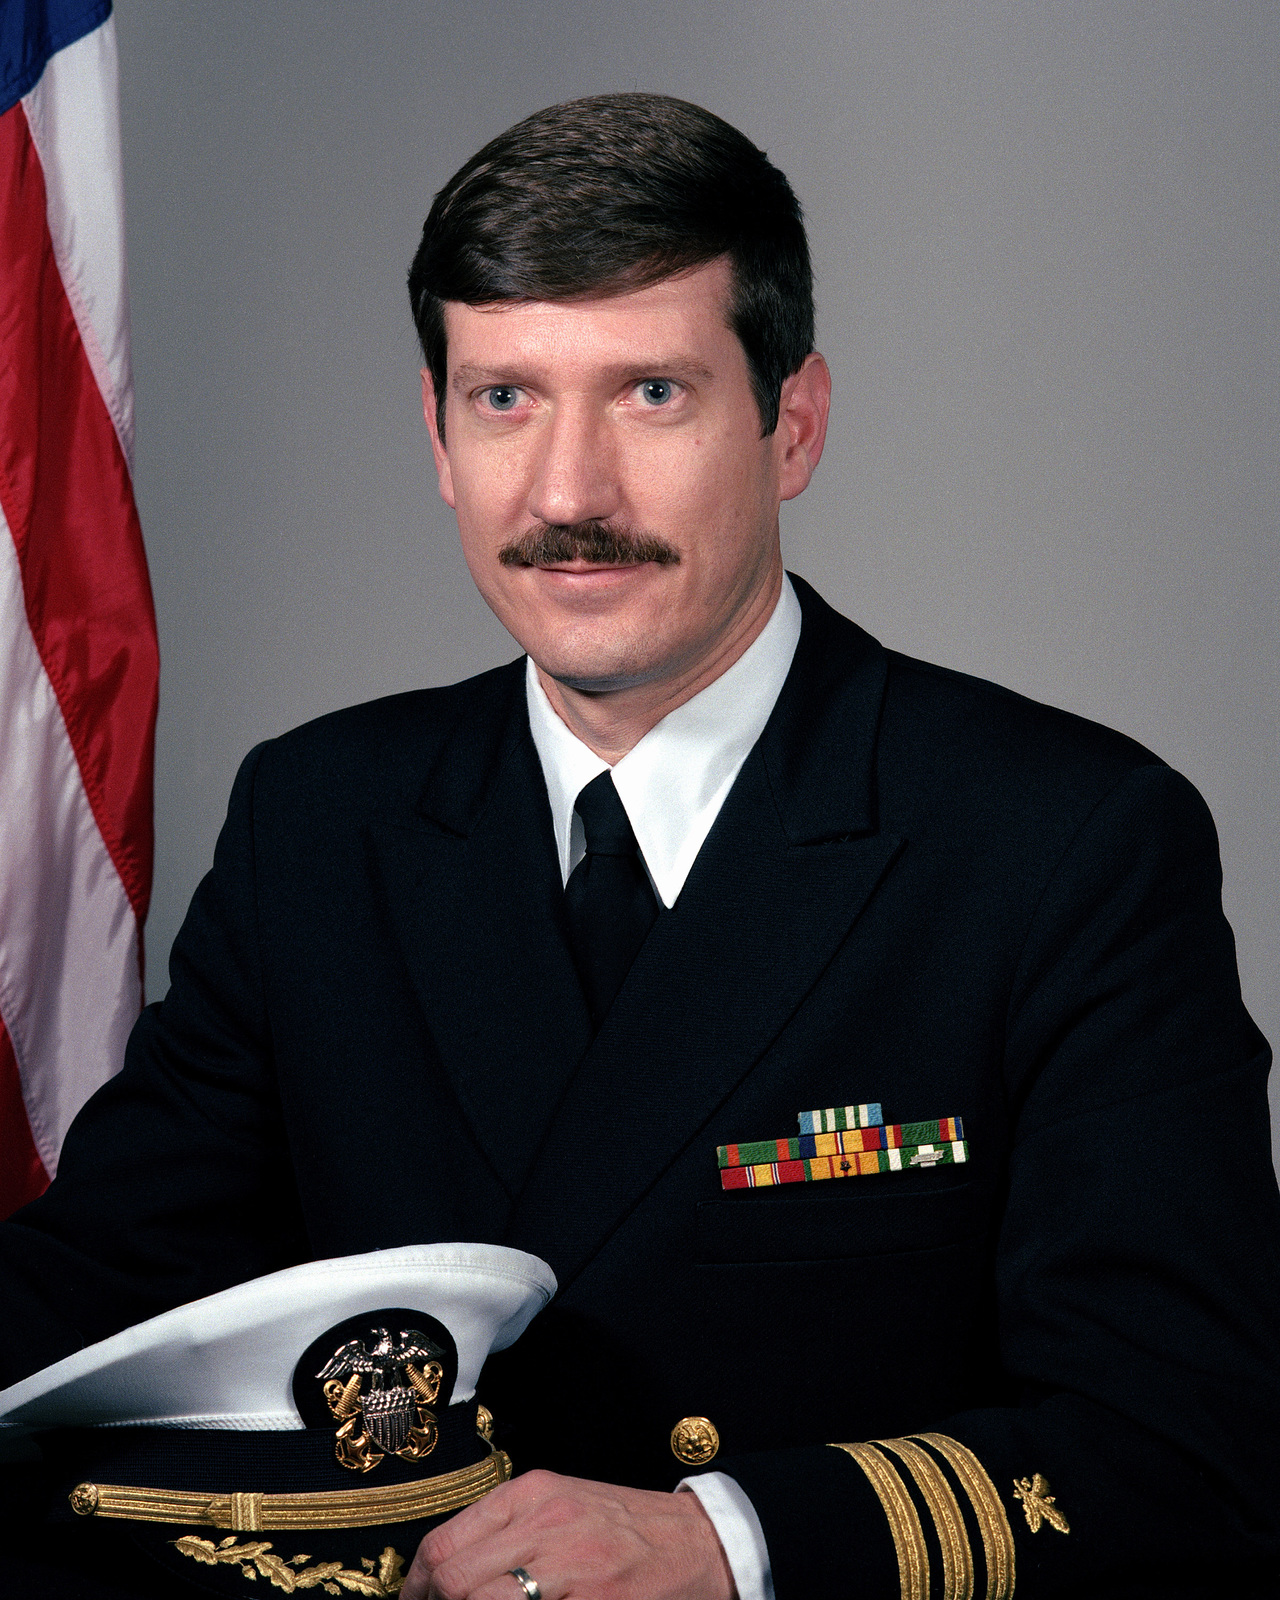 Commander David D. Compton, USN (uncovered)